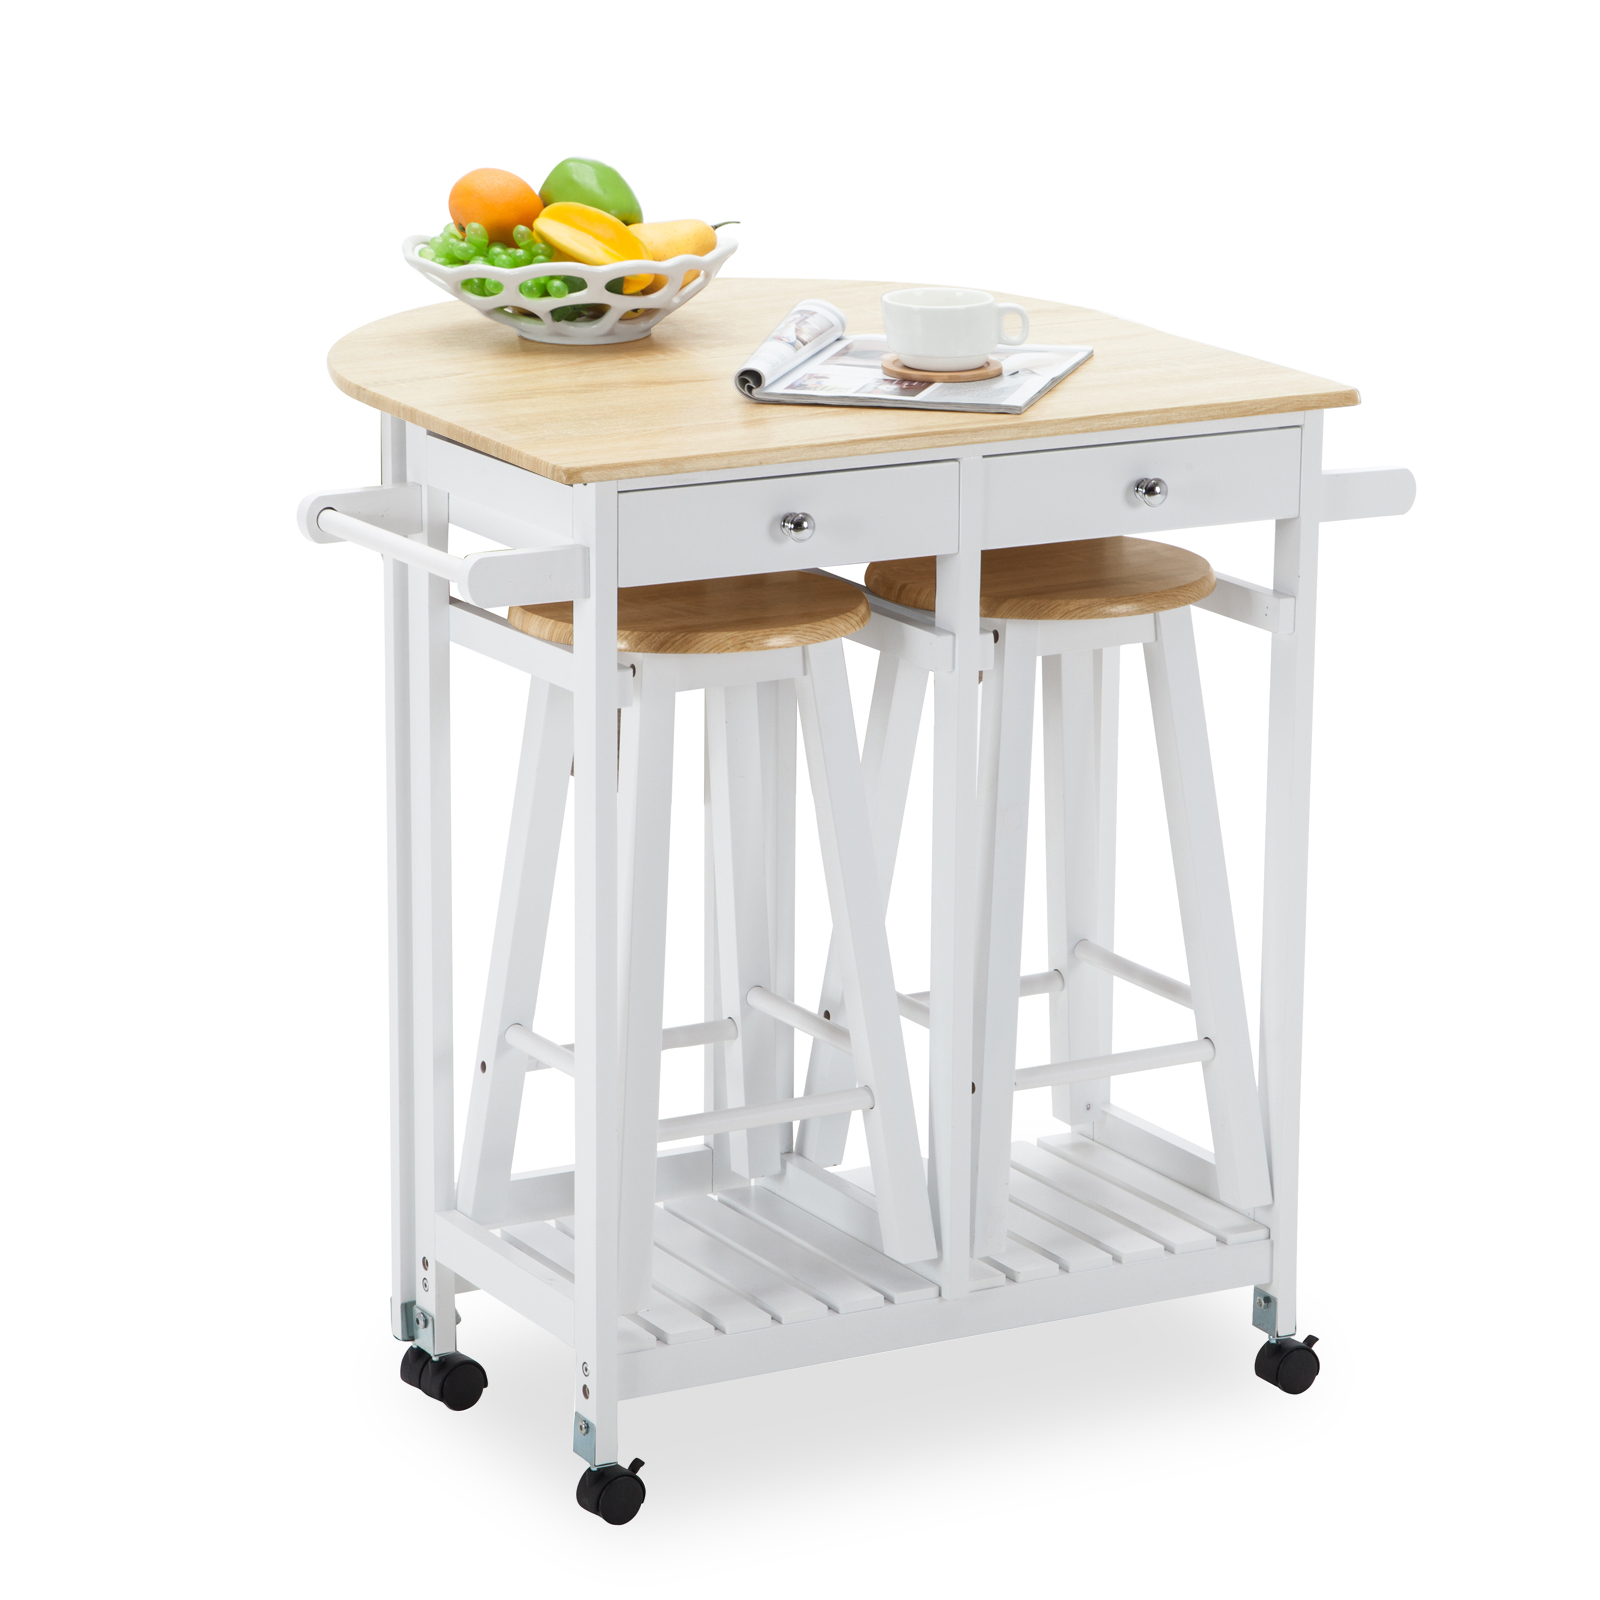 Kitchen island rolling trolley cart storage dinning table for Bar stools for kitchen islands